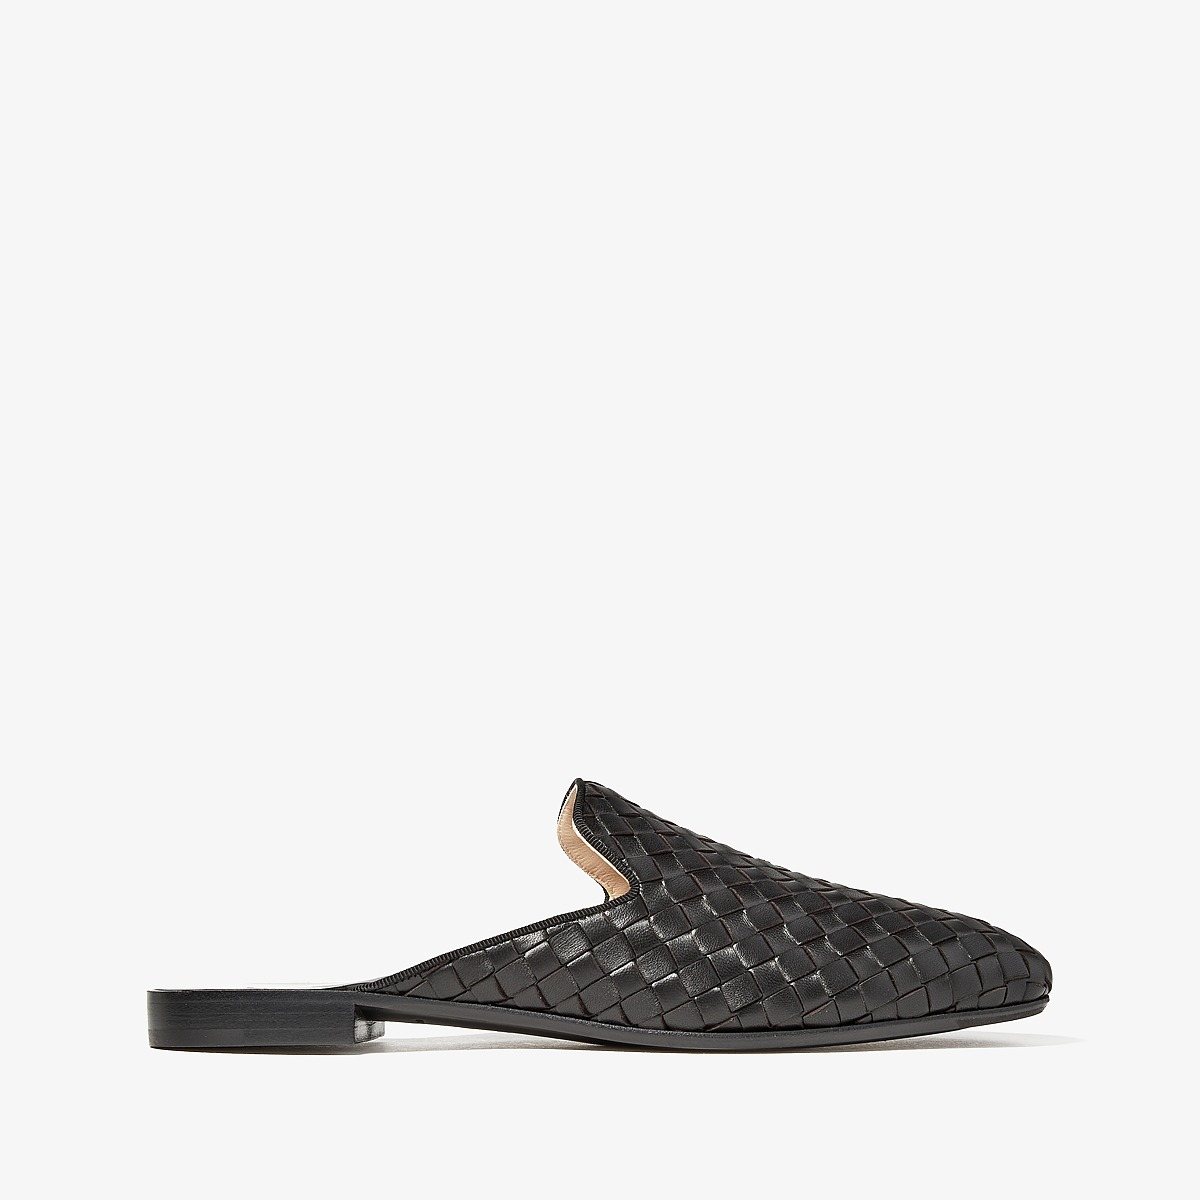 Bottega Veneta - Intrecciato Slide (Black/Black) Women's Sandals